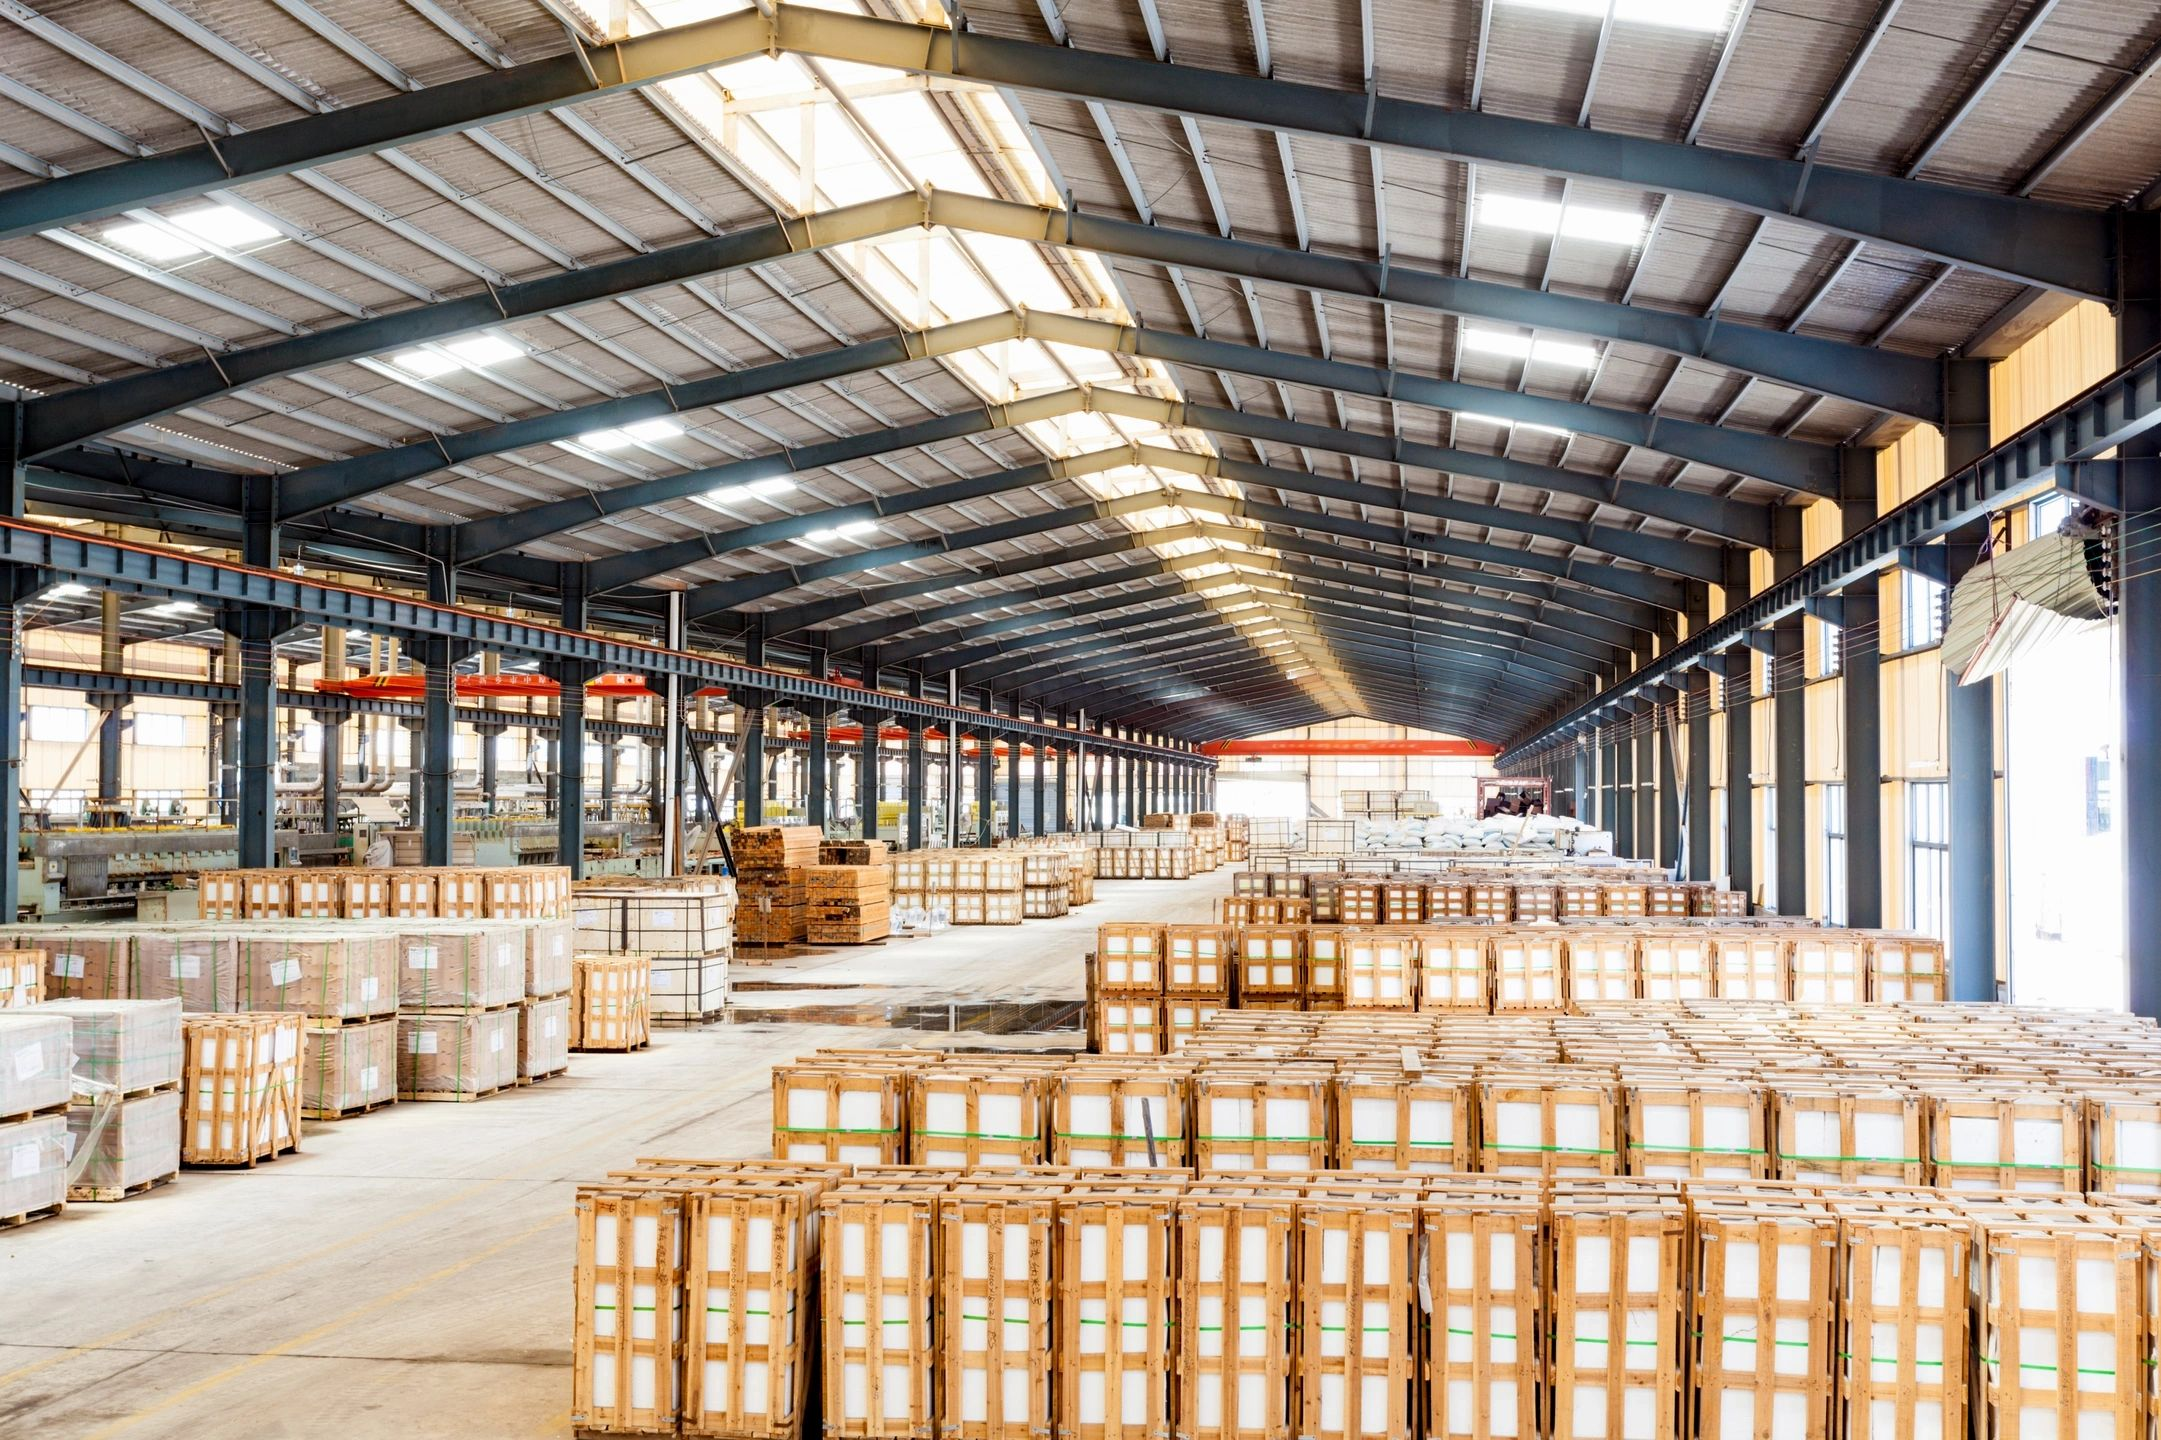 As cleaning experts, Global Clean provides warehouse cleaning in The Greater Toronto Area and Toronto Area. In summary, we help warehouses maintain a clean property.